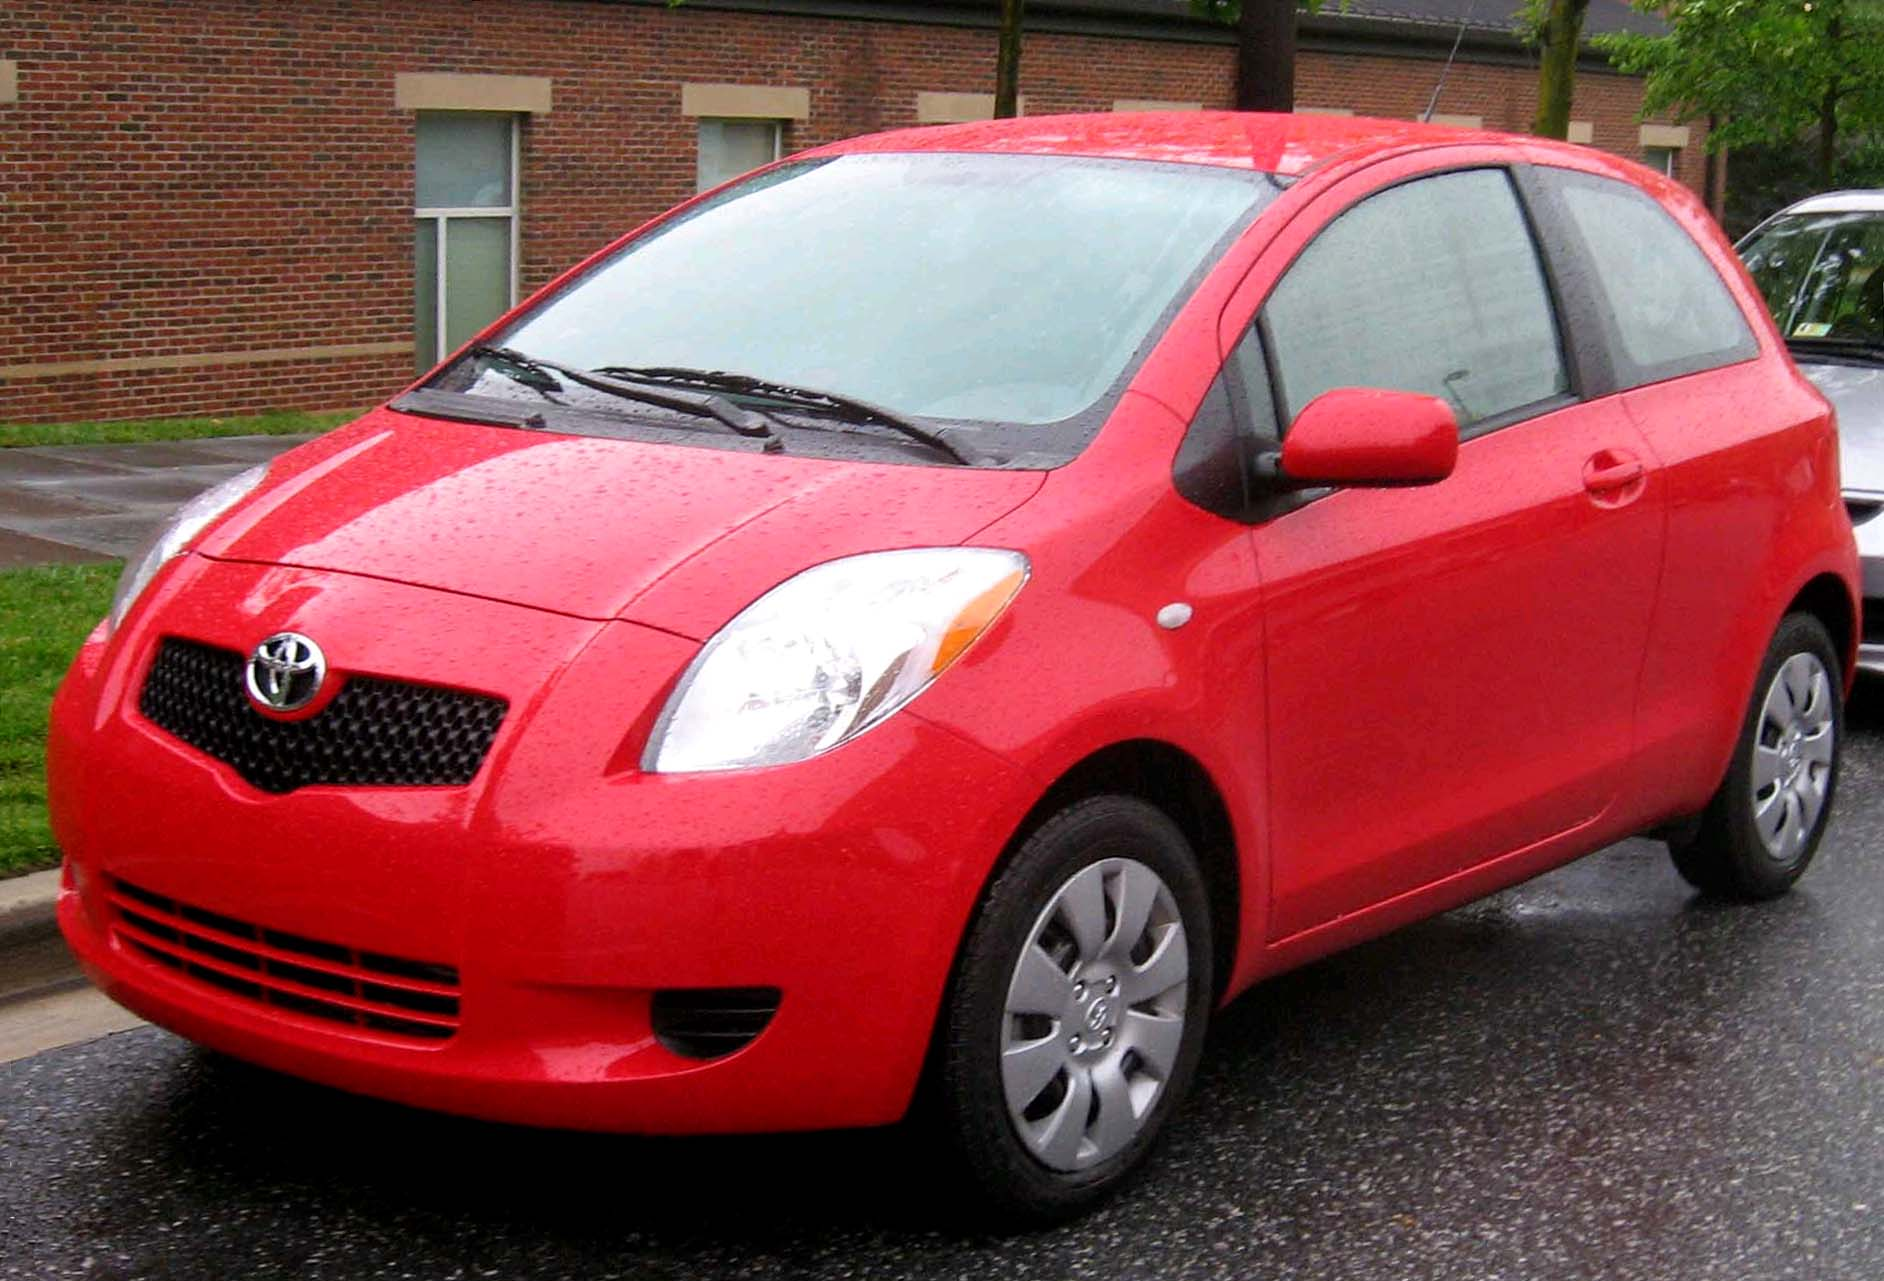 Cute Cars: Top 10 Cheap And Beautiful Cars For Girls